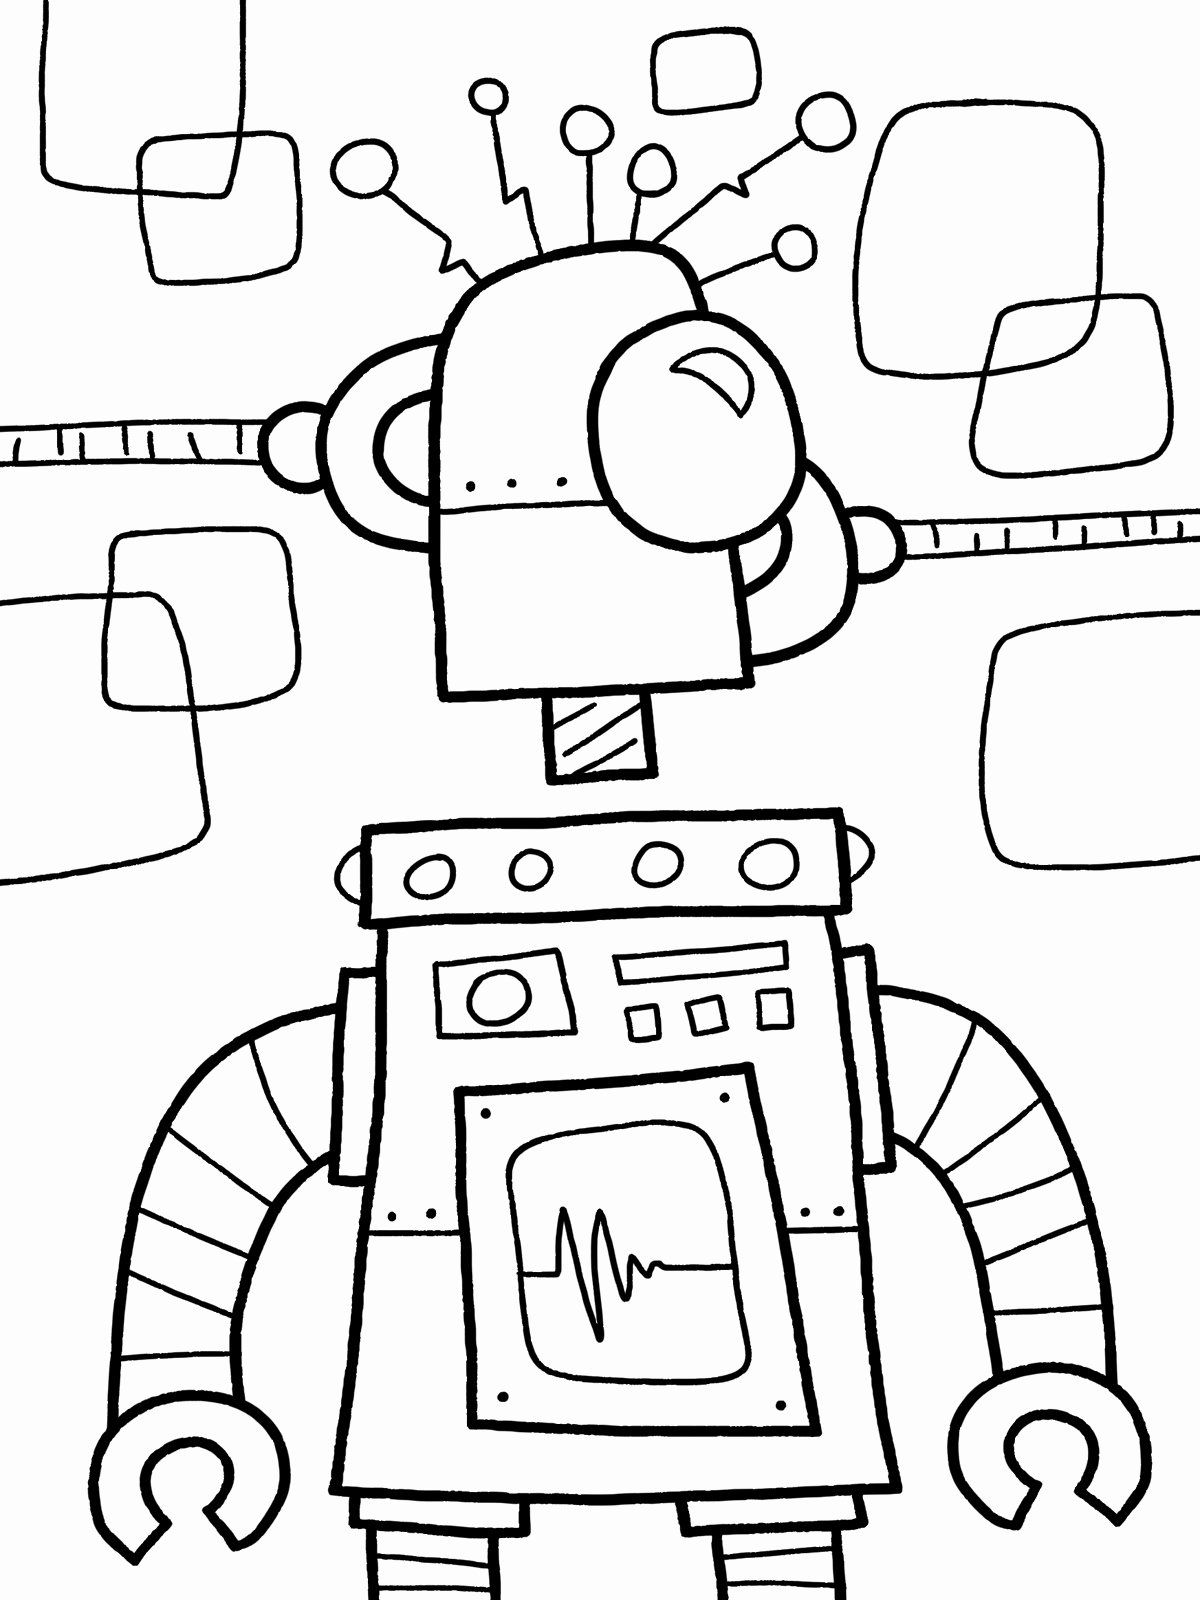 Robot Dinosaur Coloring Pages Toddler Coloring Book Lego